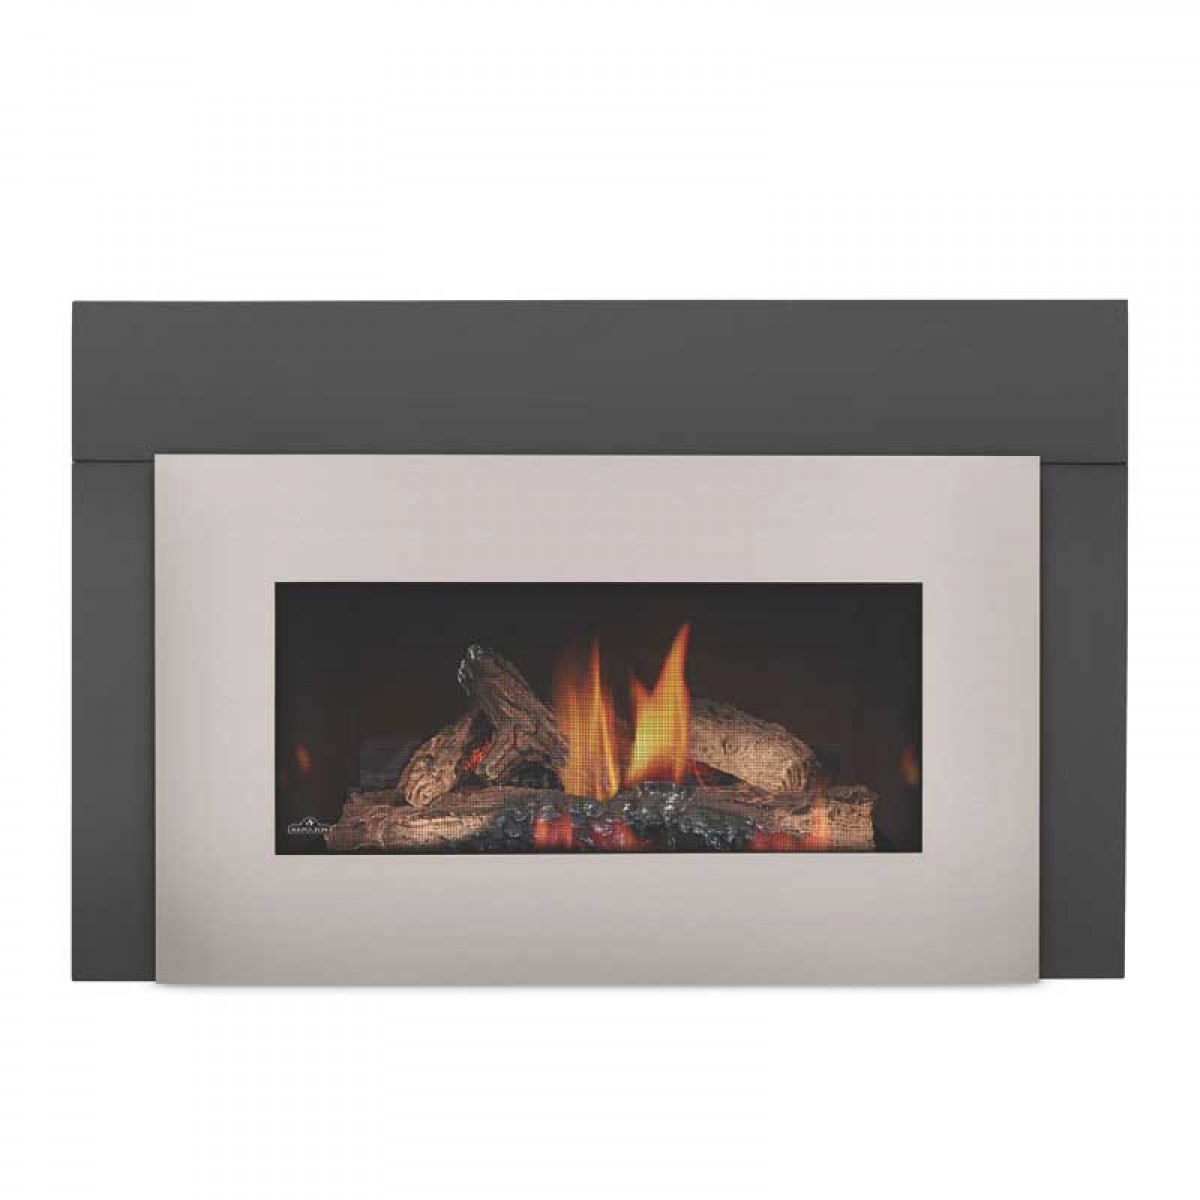 Find discount prices on the Napoleon GI3600-4N Basic Natural gas fireplace insert w/glass and other Napoleon products at iBuyfireplaces.com.